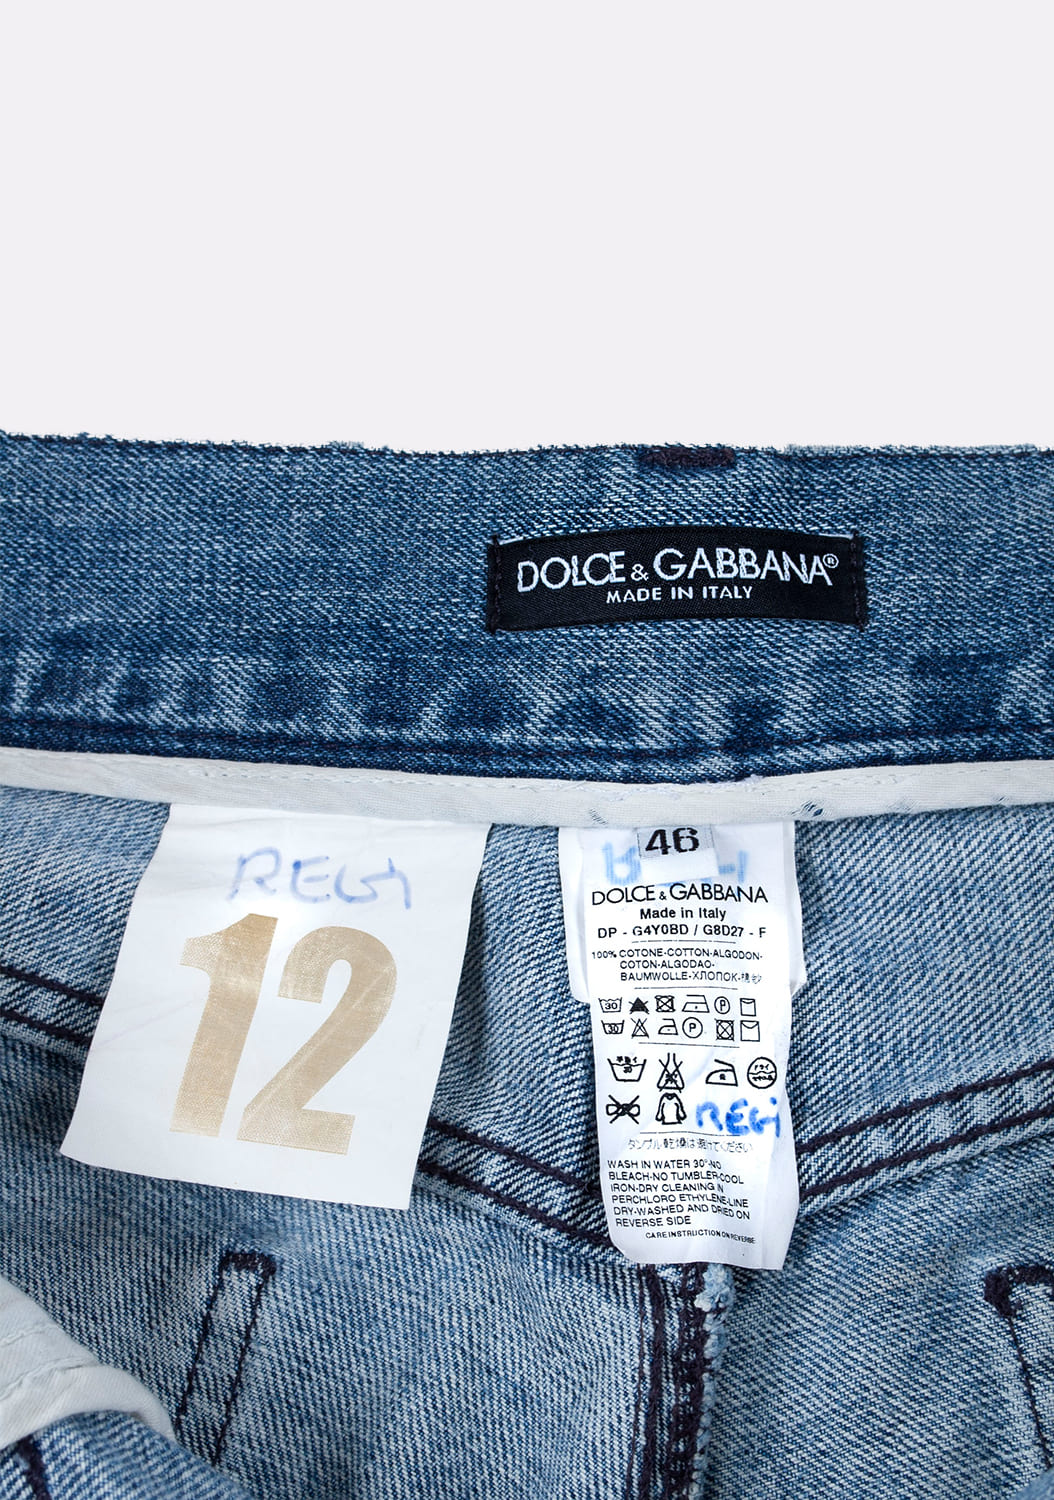 dolce-gabbana-slim-fit-dzinsai (7)